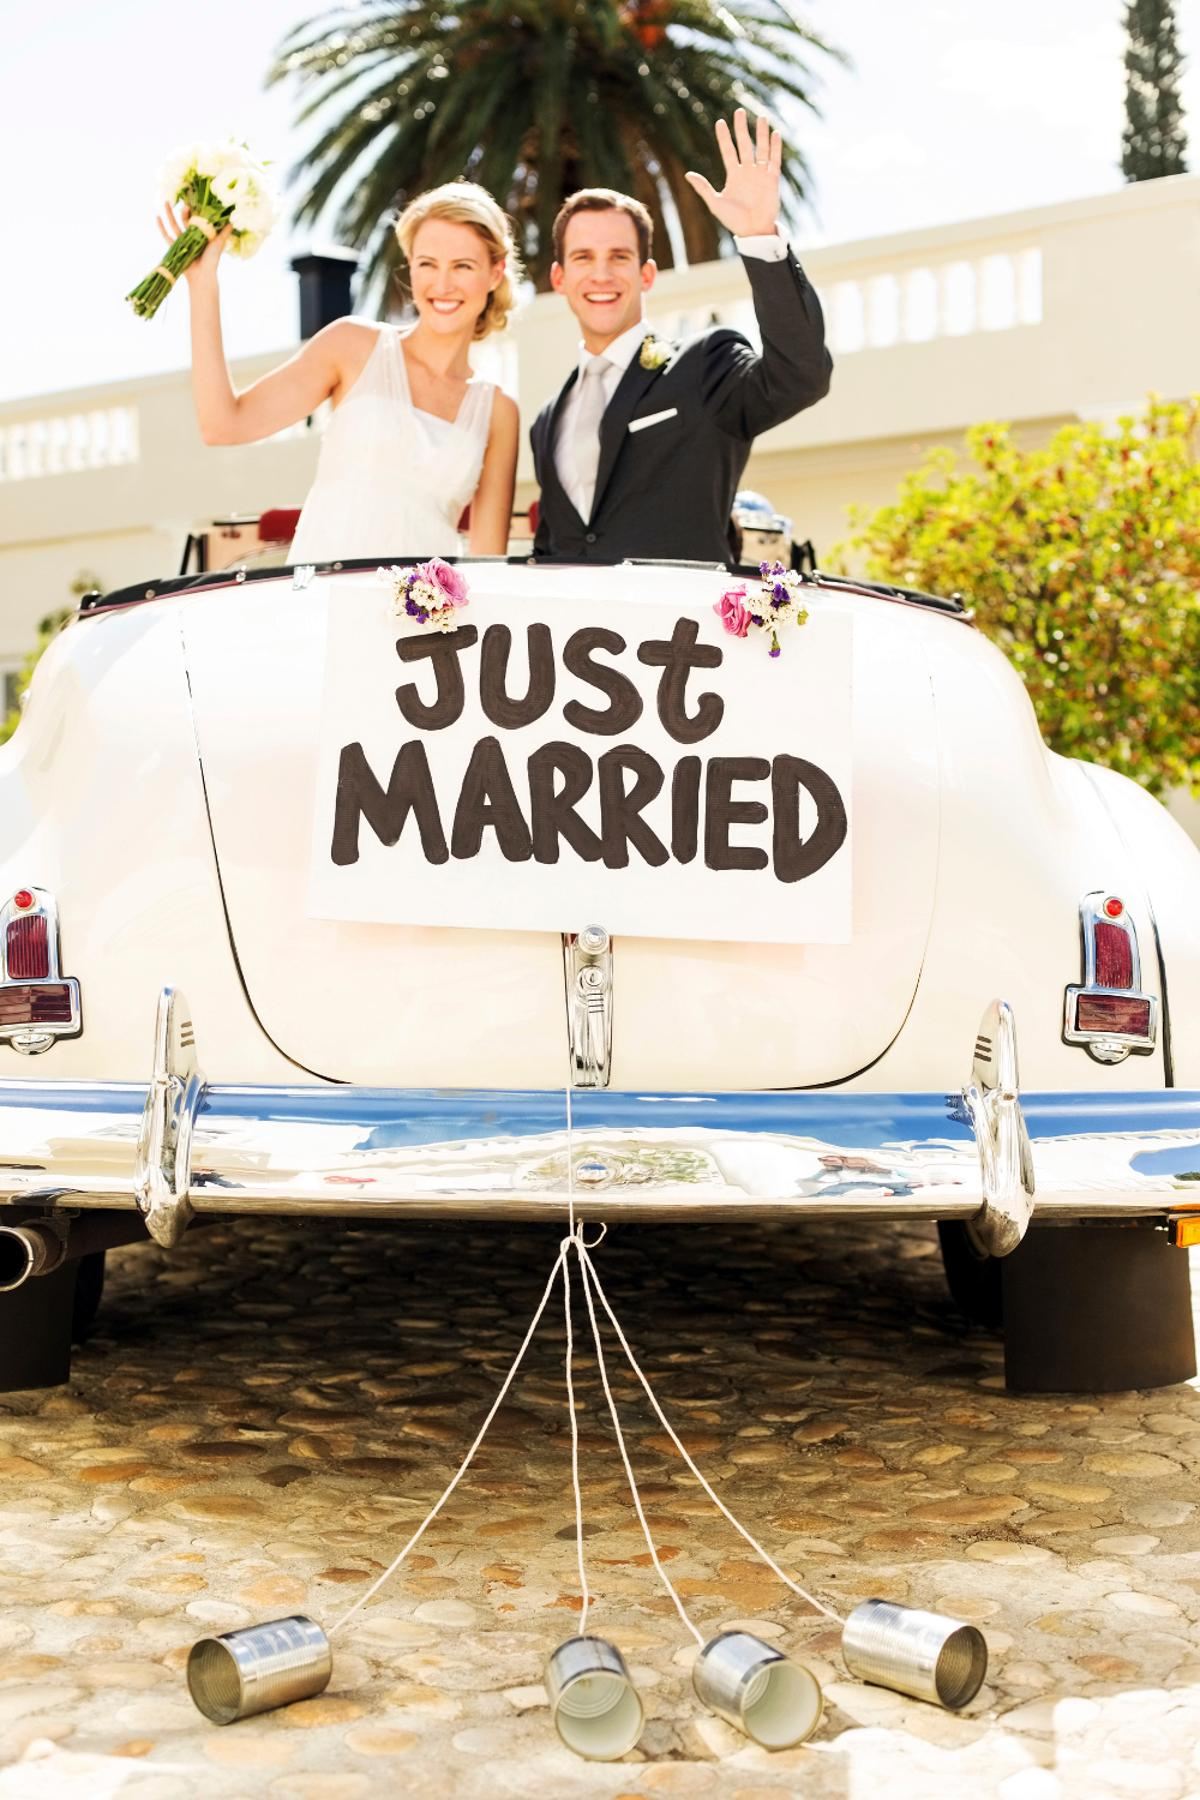 Just married tits on free show